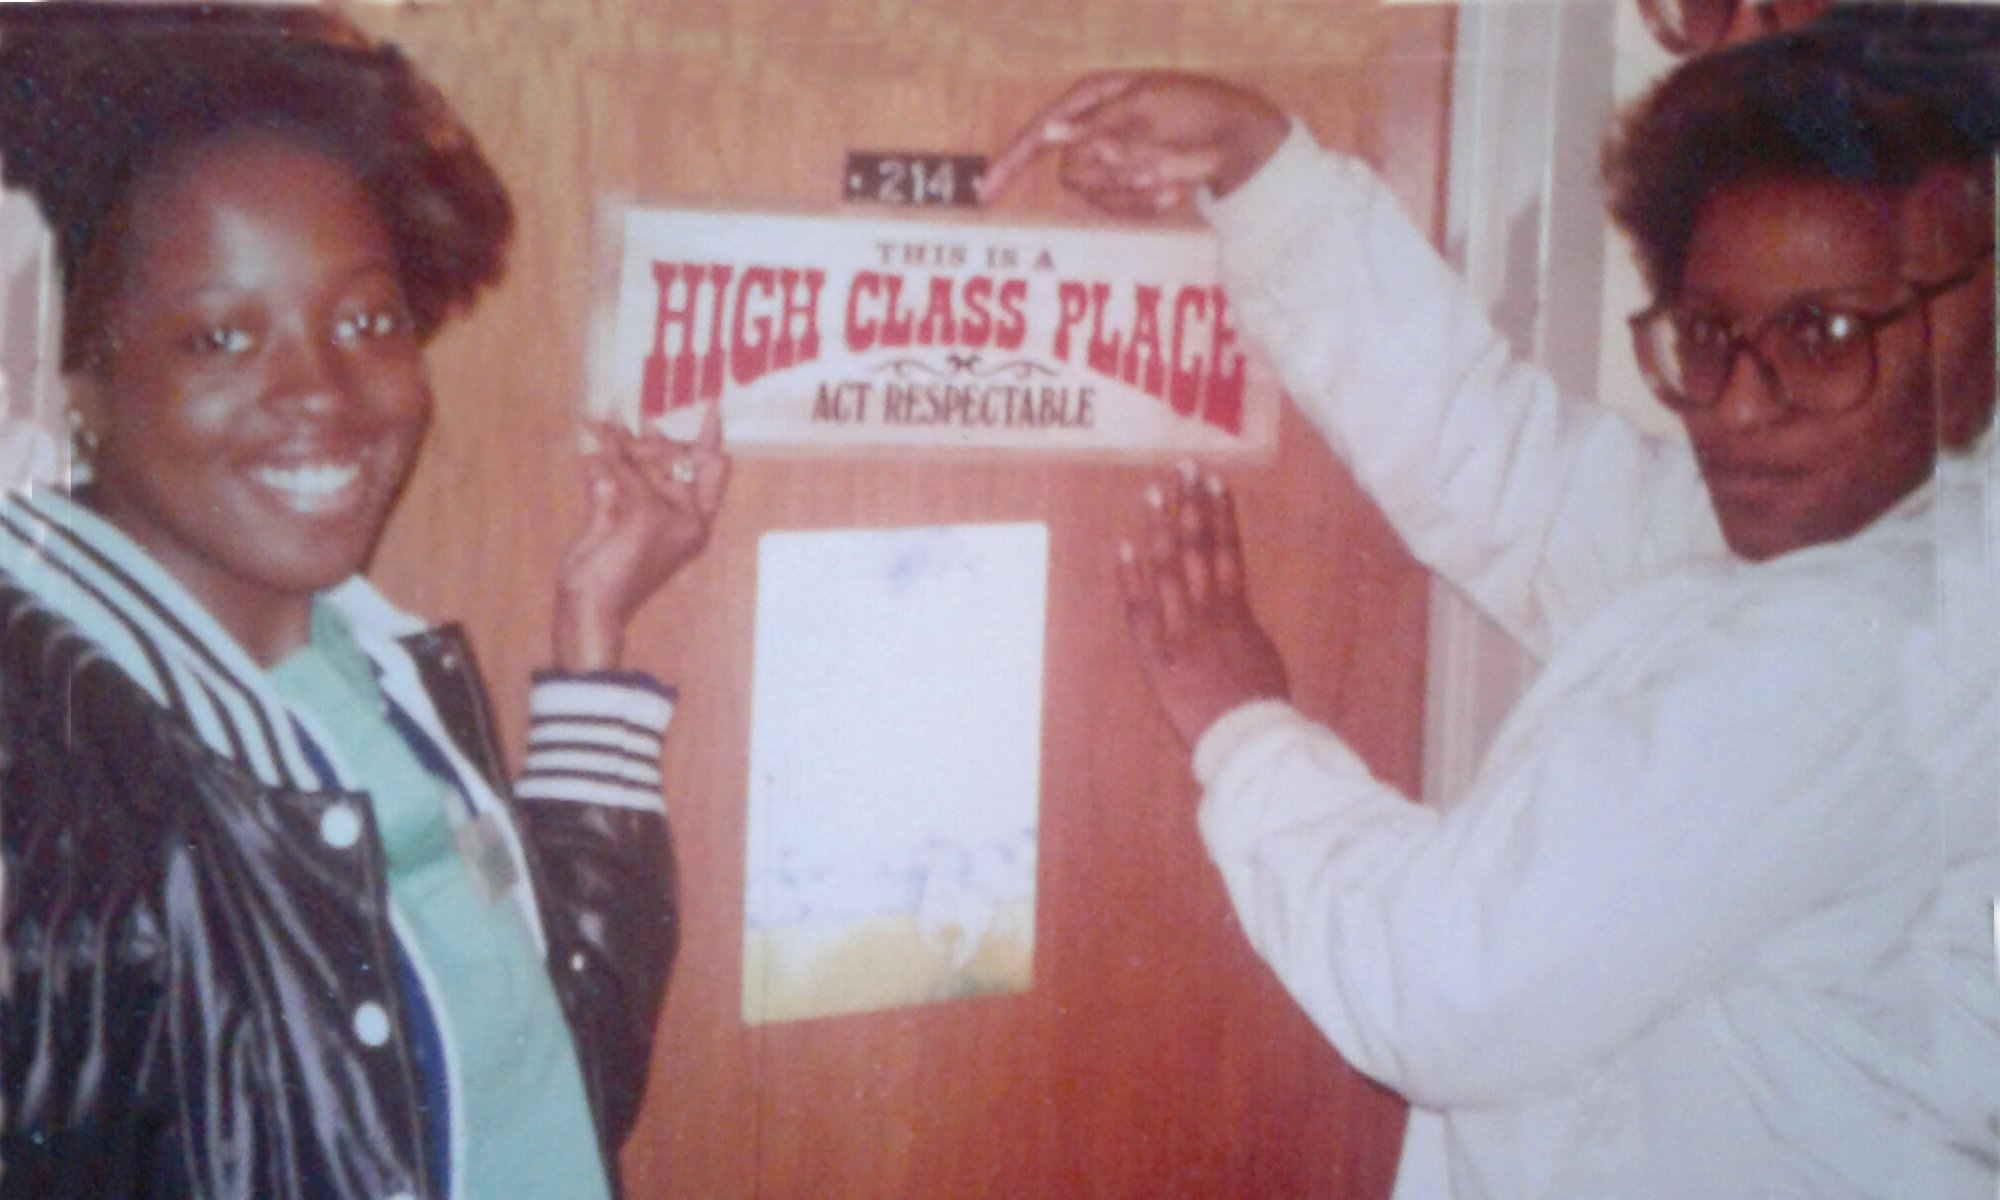 two women pointing to a sign on a door that says High Class Place